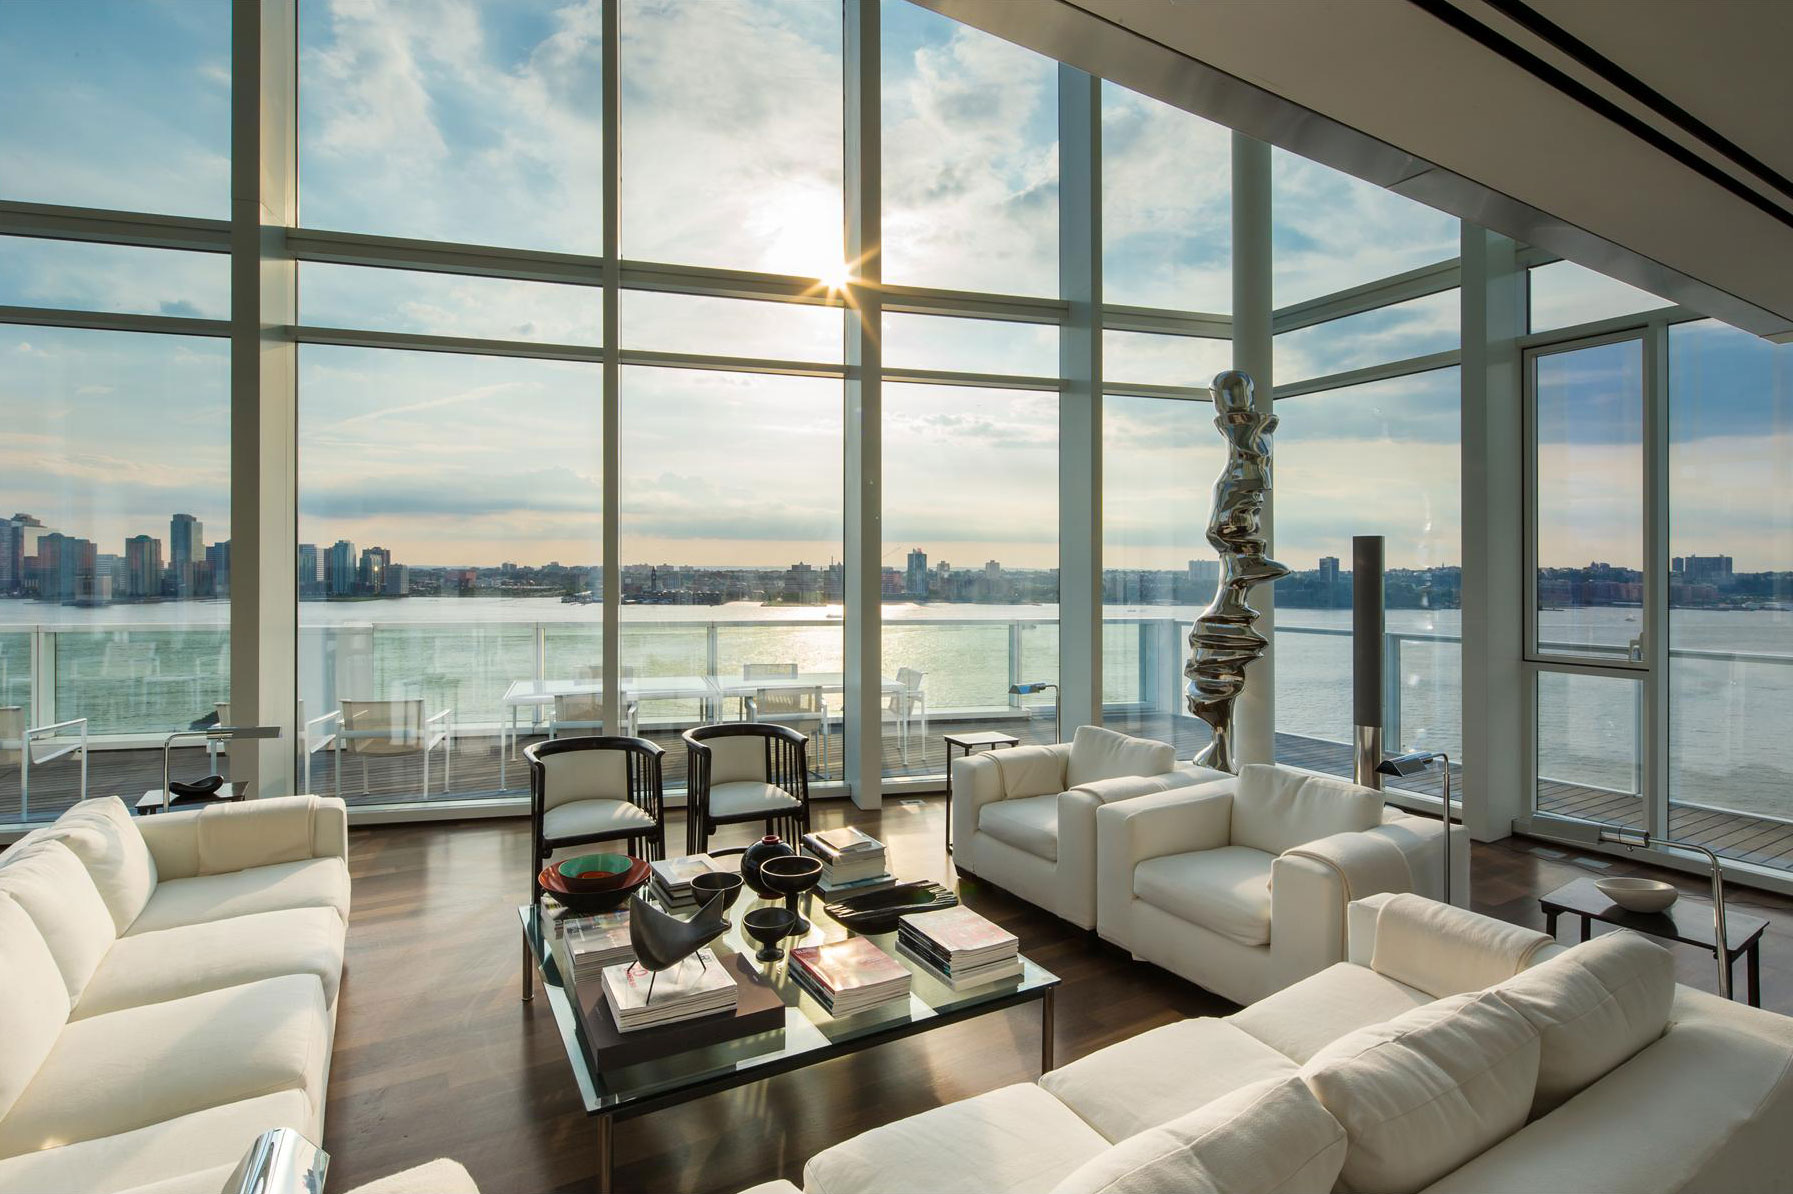 Charmant Sofas, Glass Coffee Table, Floor To Ceiling Windows, Apartment In Manhattan